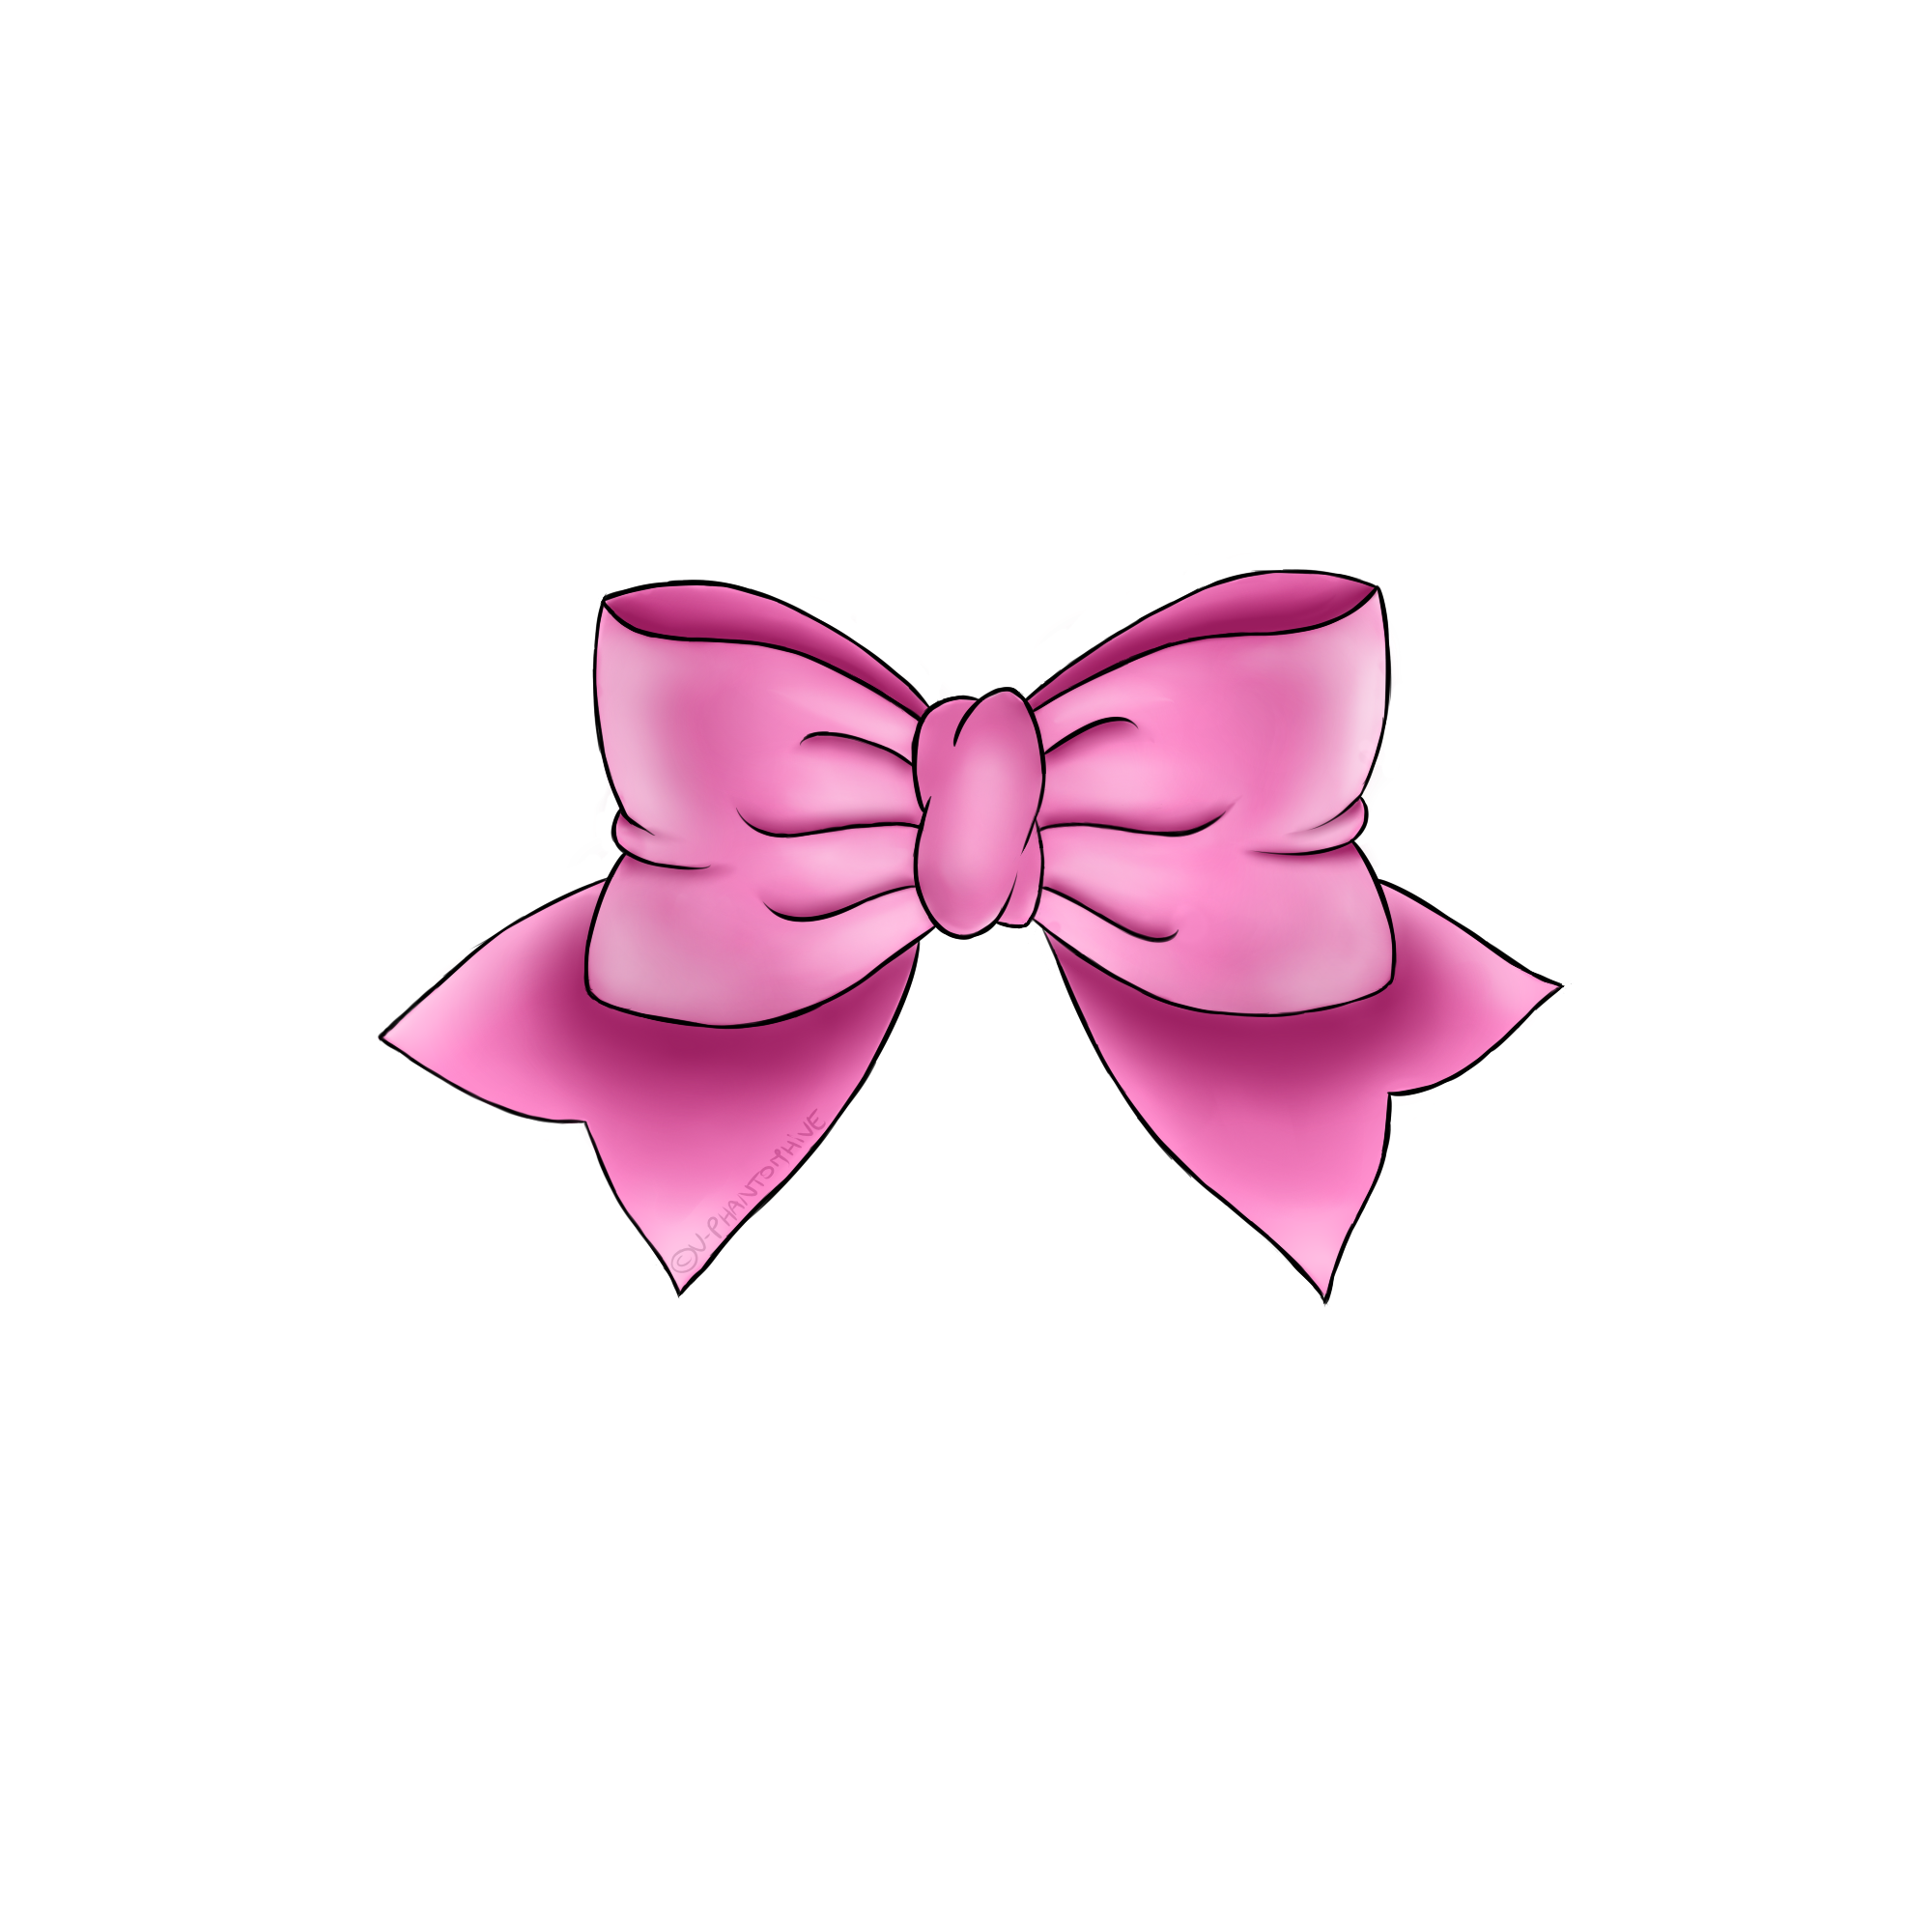 Cute Pink Bow Background Tumblr | newhairstylesformen2014.com